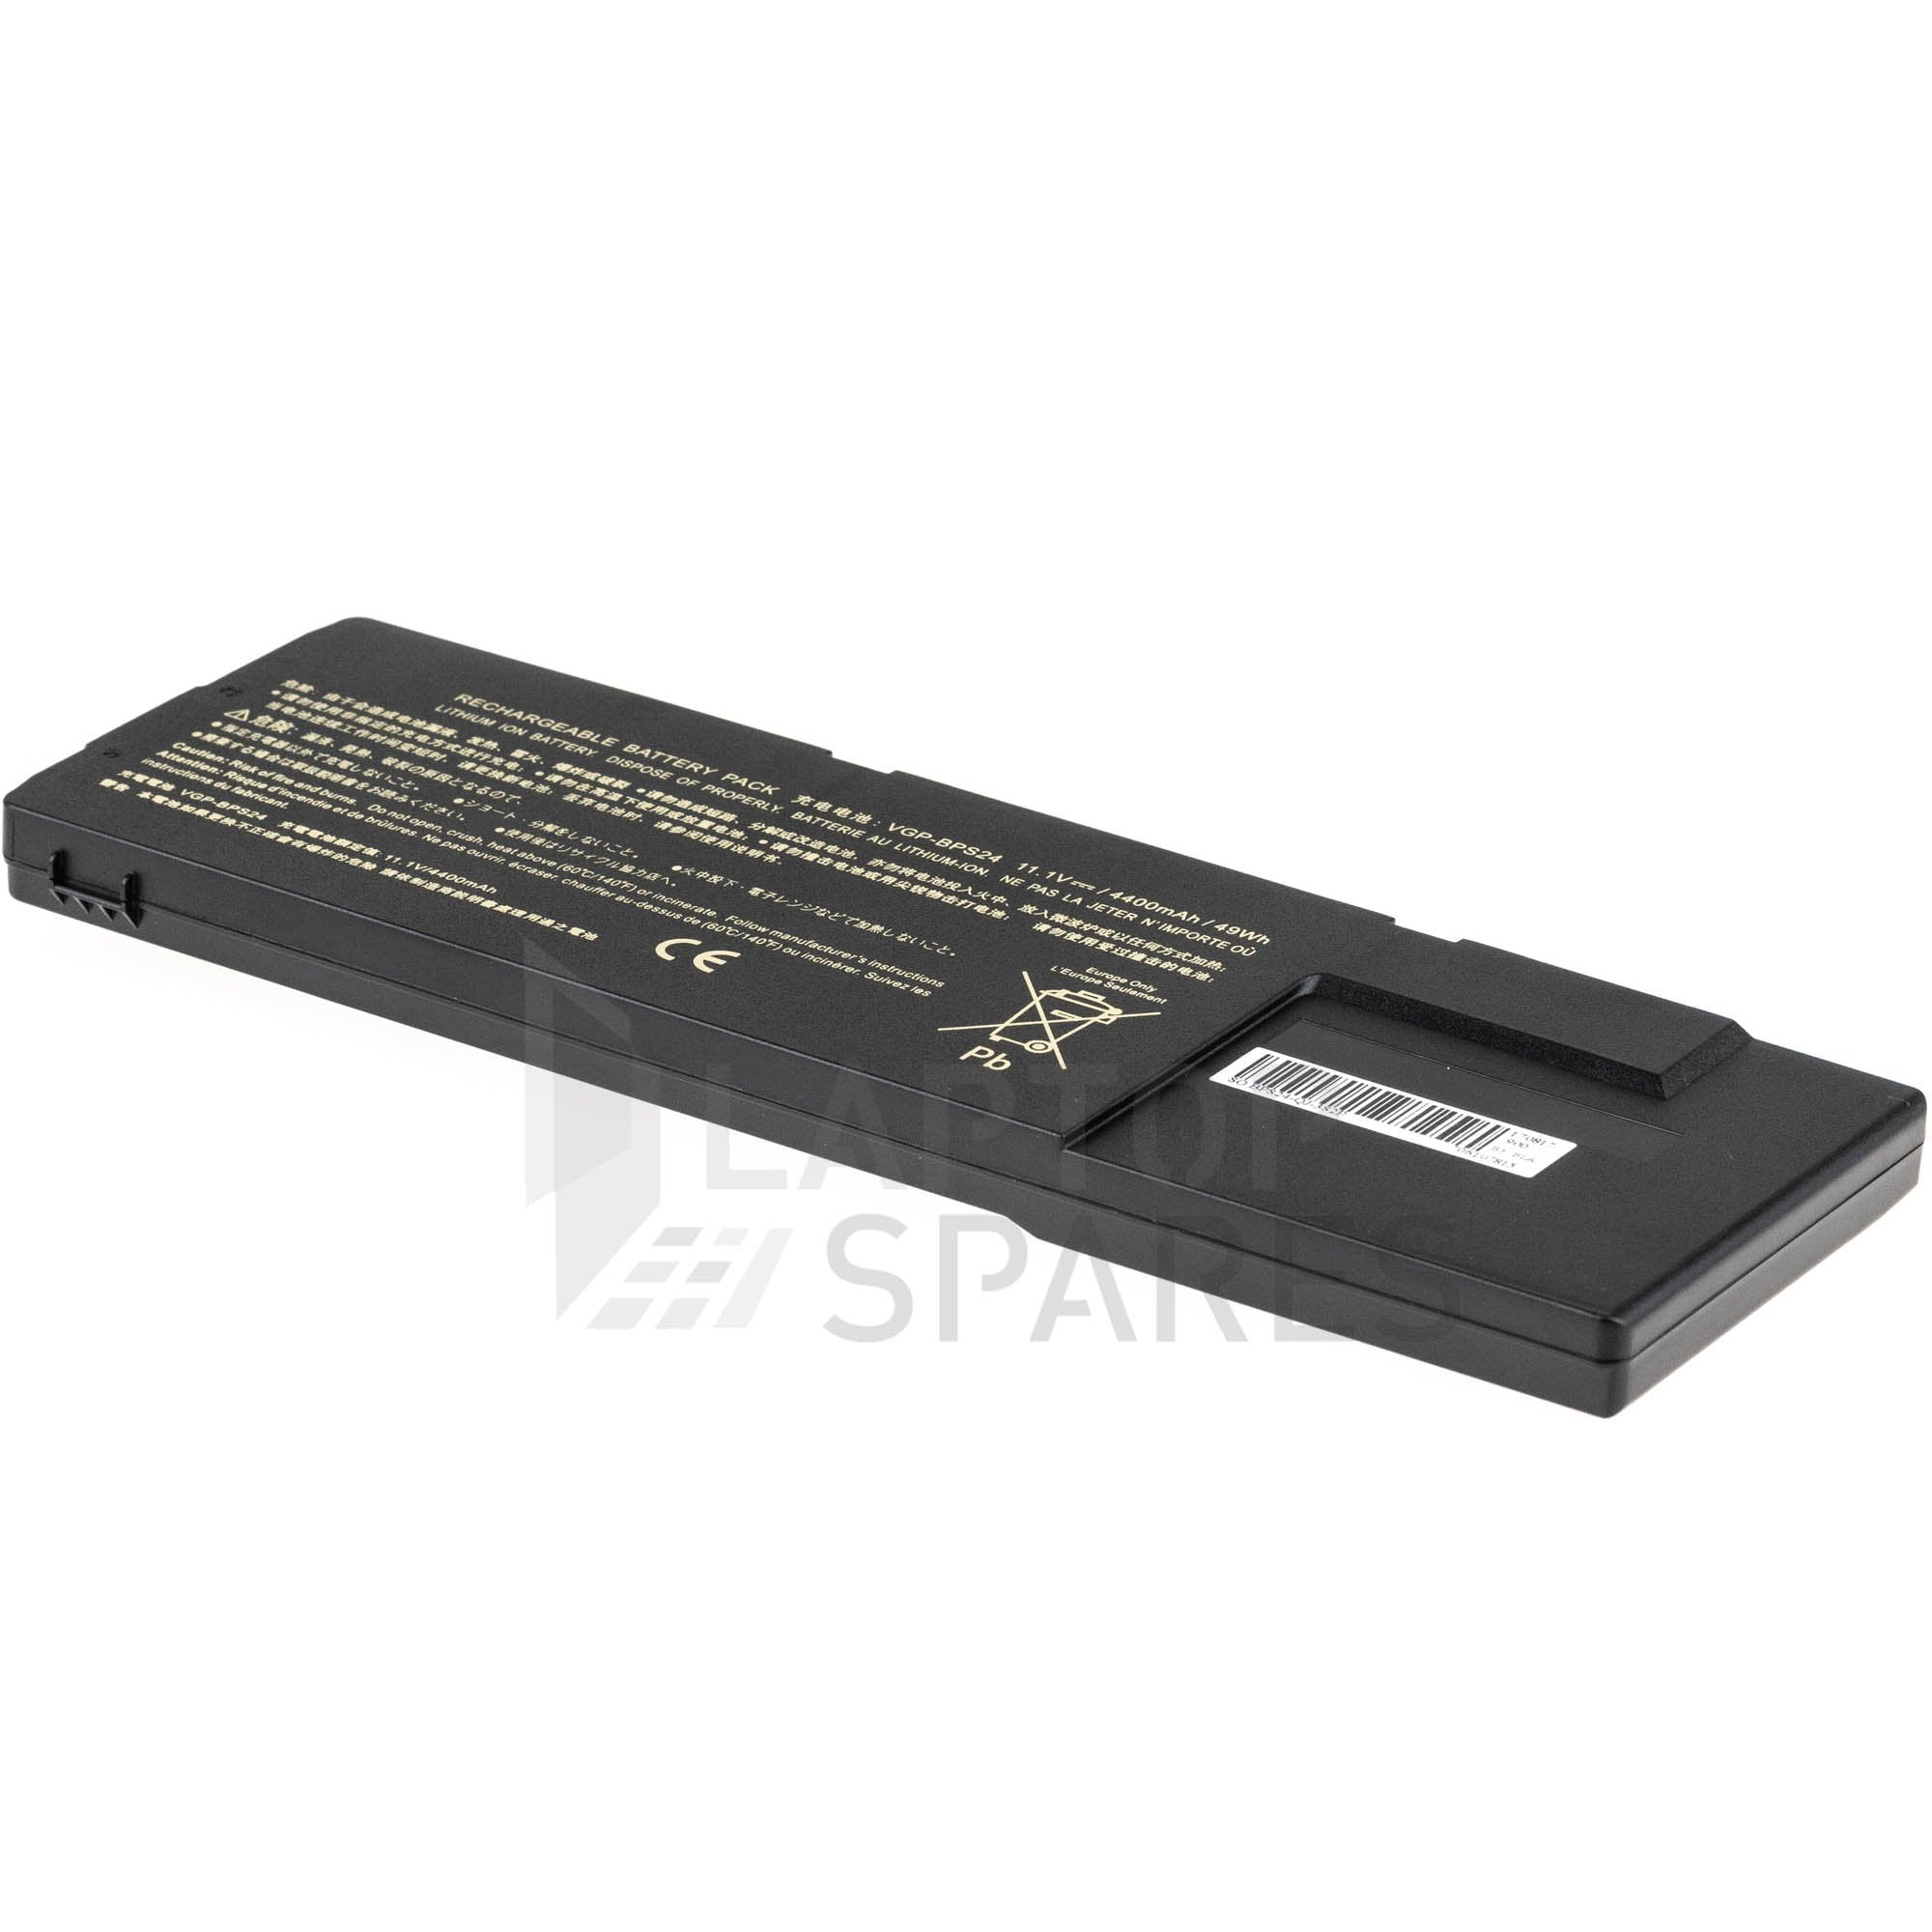 Sony Vaio VPC SD28EC/B 4400mAh 6 Cell Battery